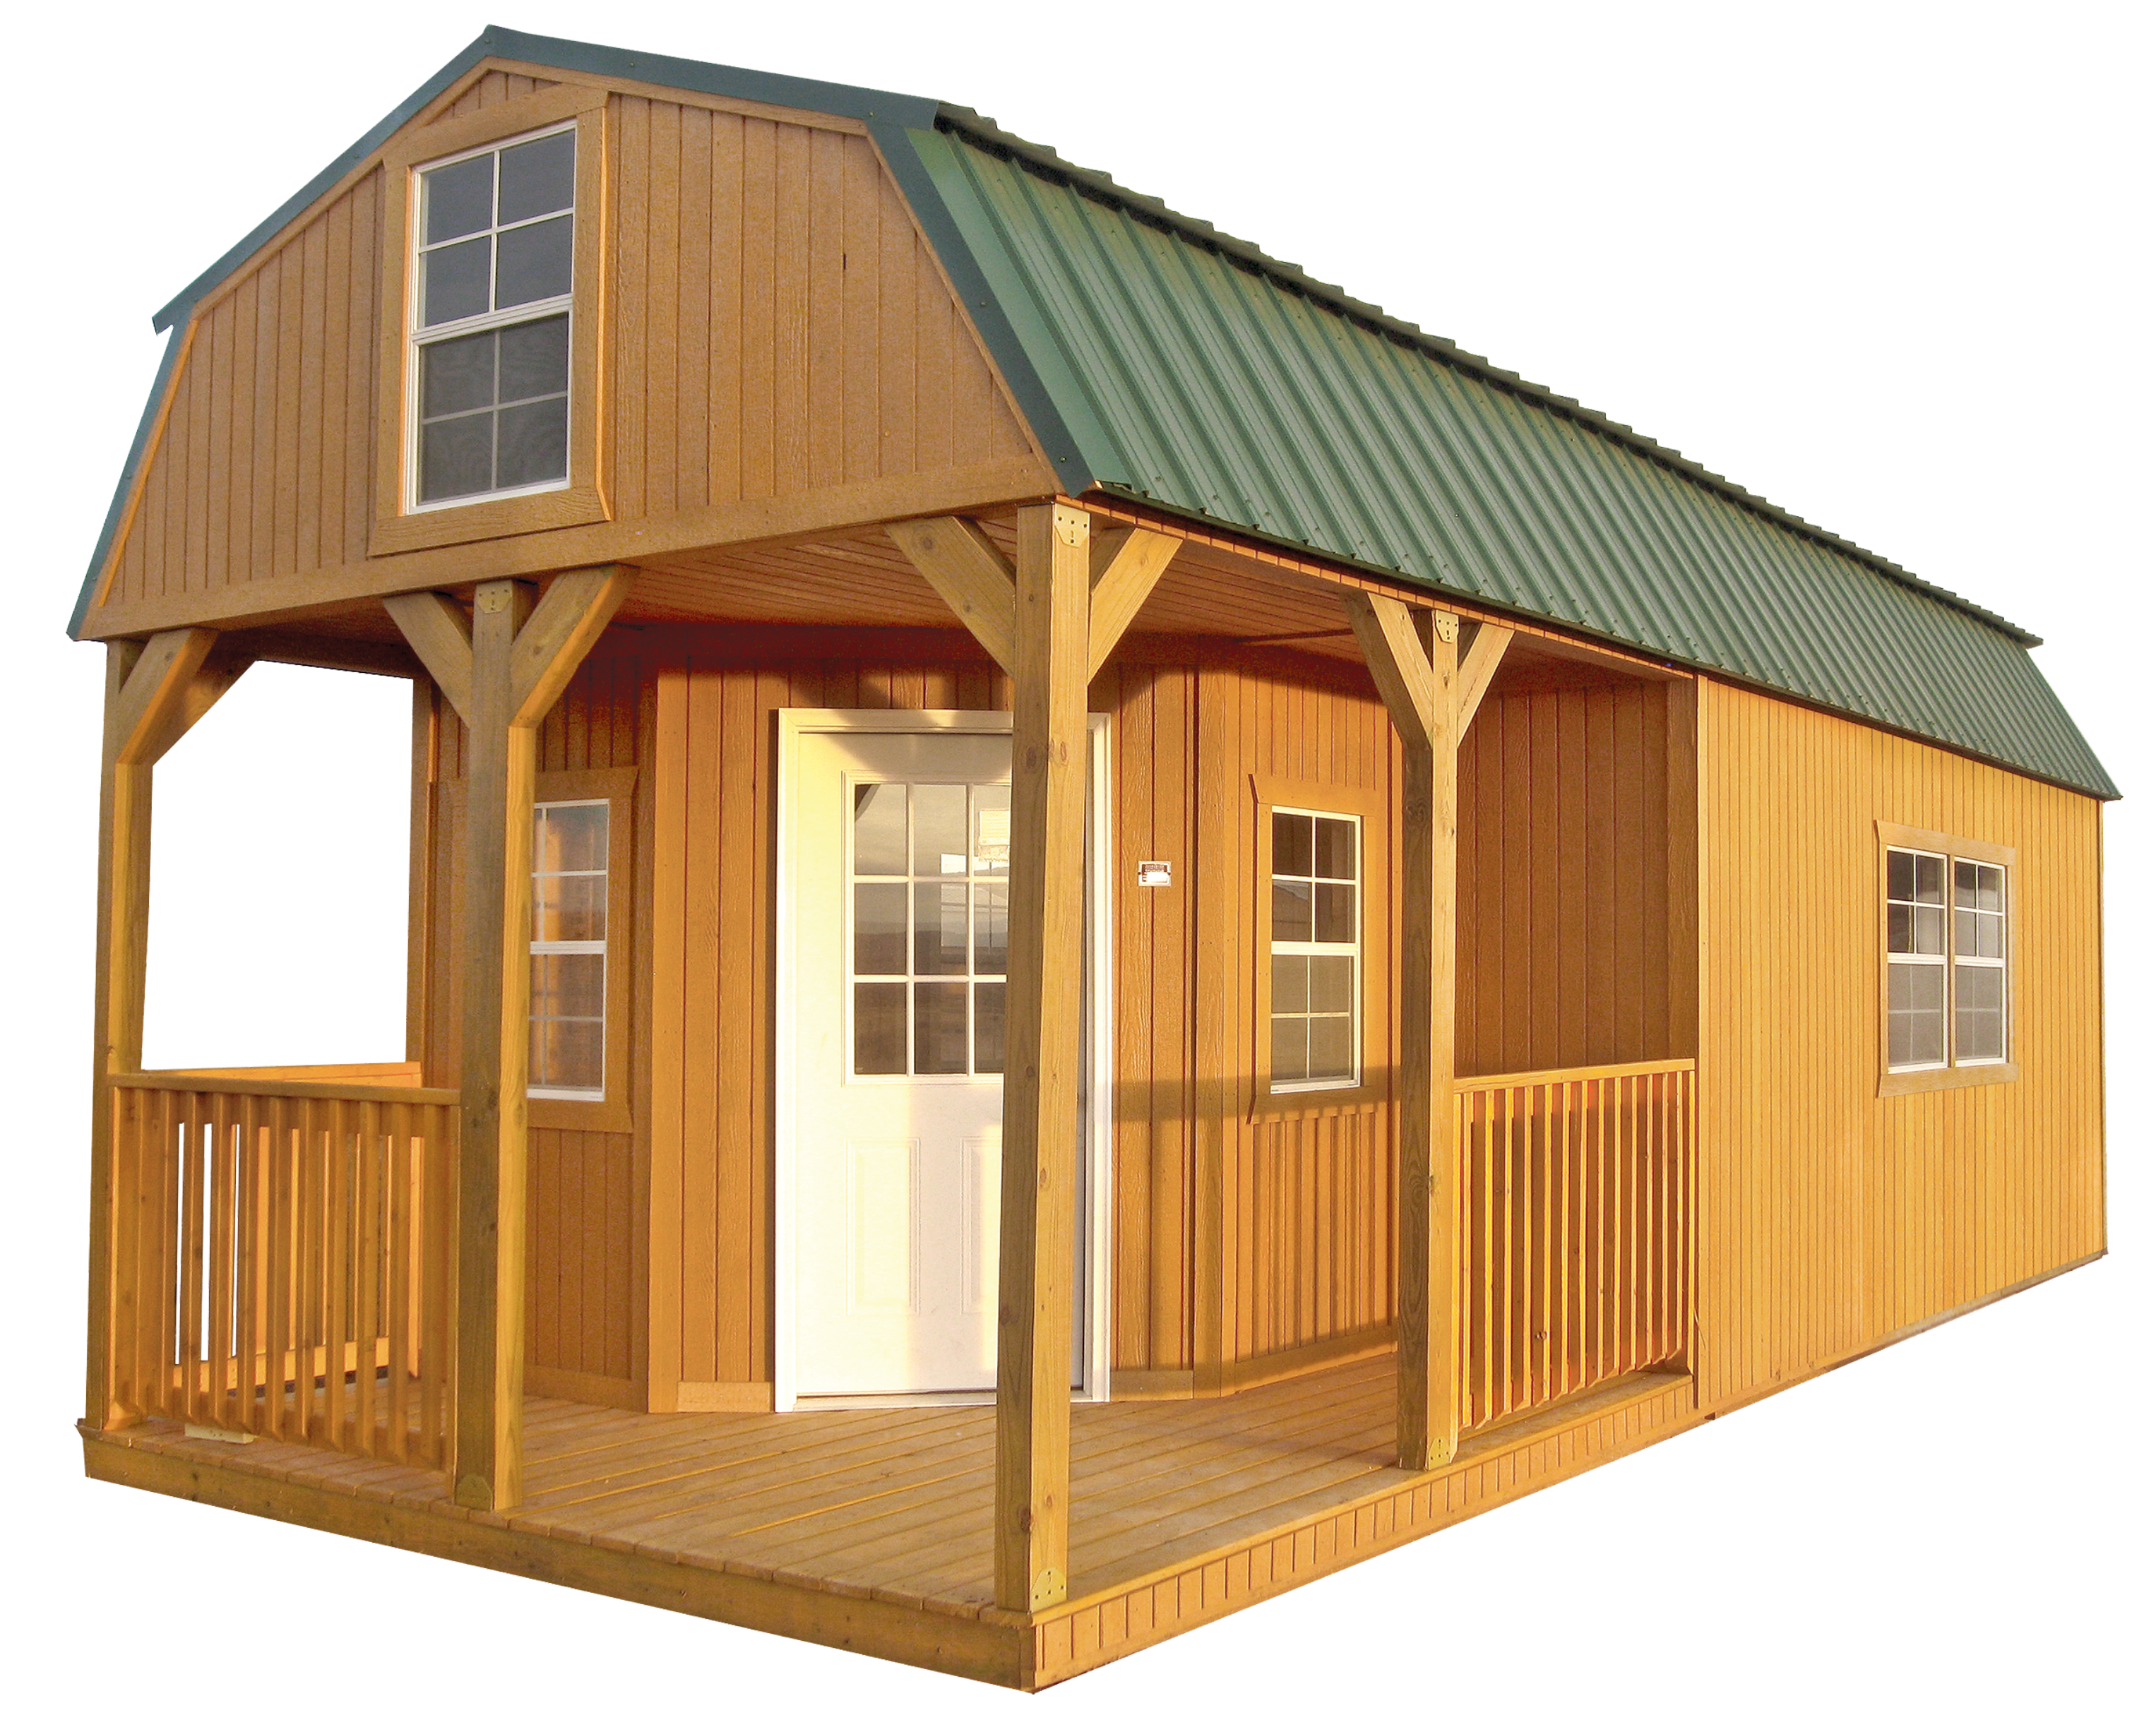 rent storage portable vacation cabins crafted texas cabin for in buildings own to